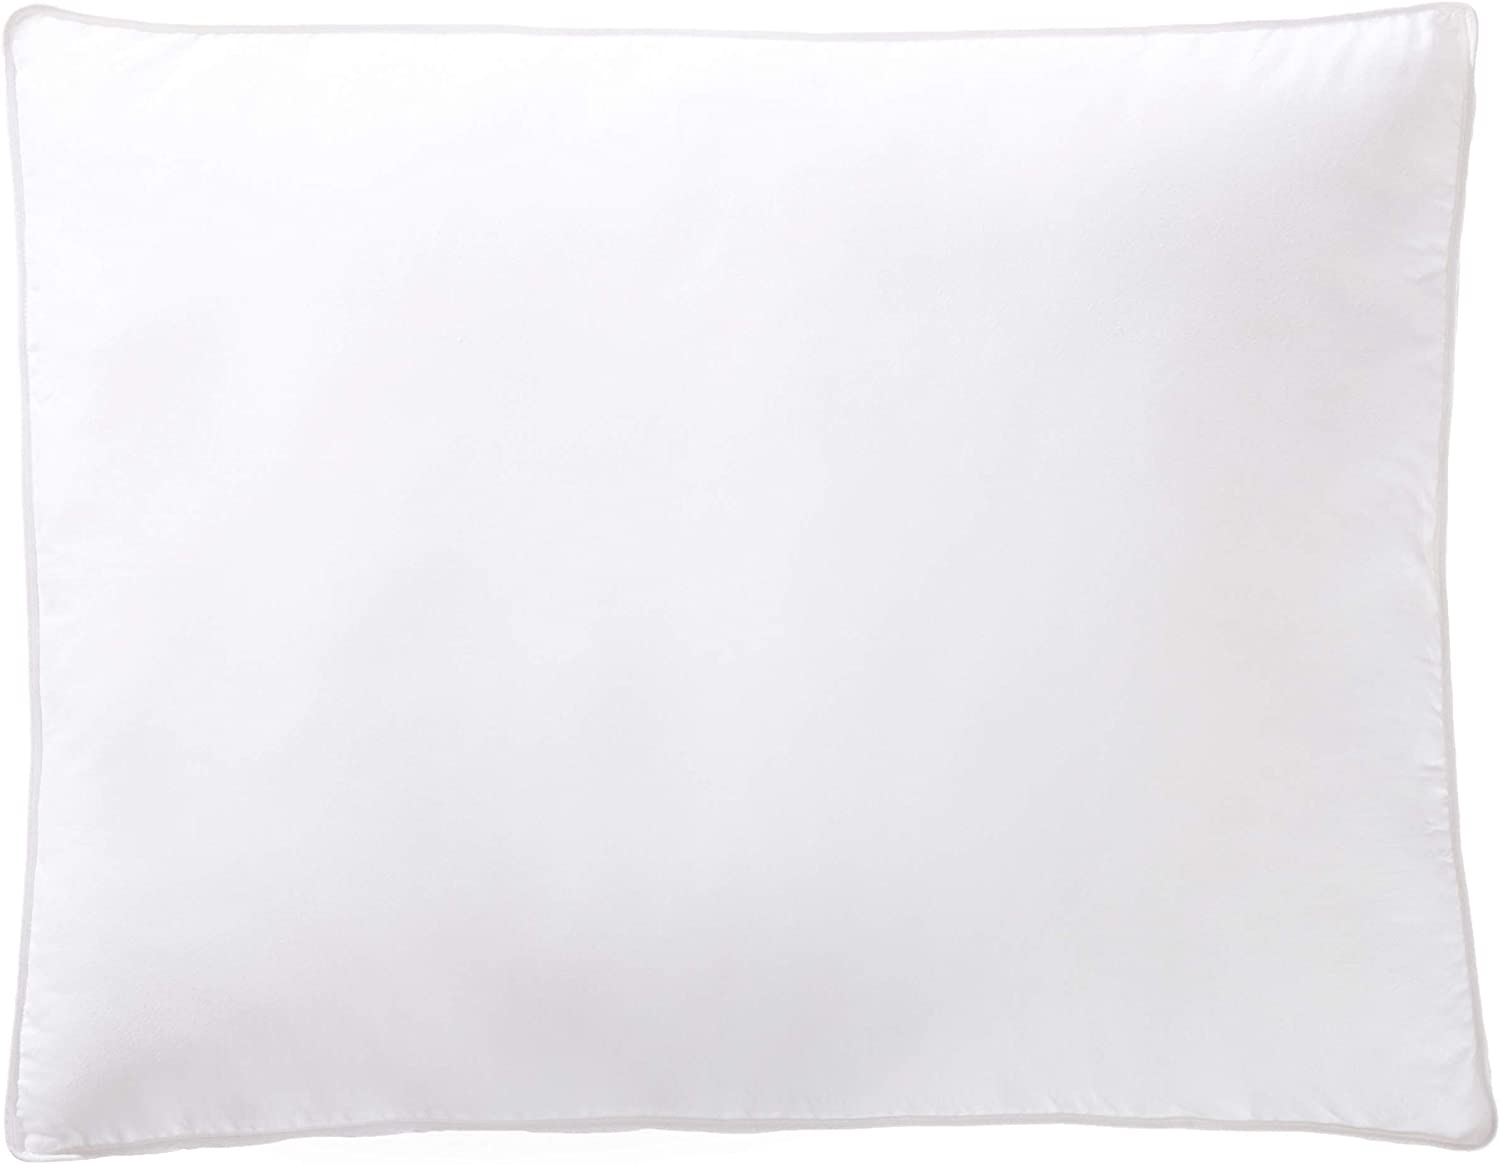 AmazonBasics Down-Alternative Gusseted Pillows with Cotton Shell - Pack of 2, Queen